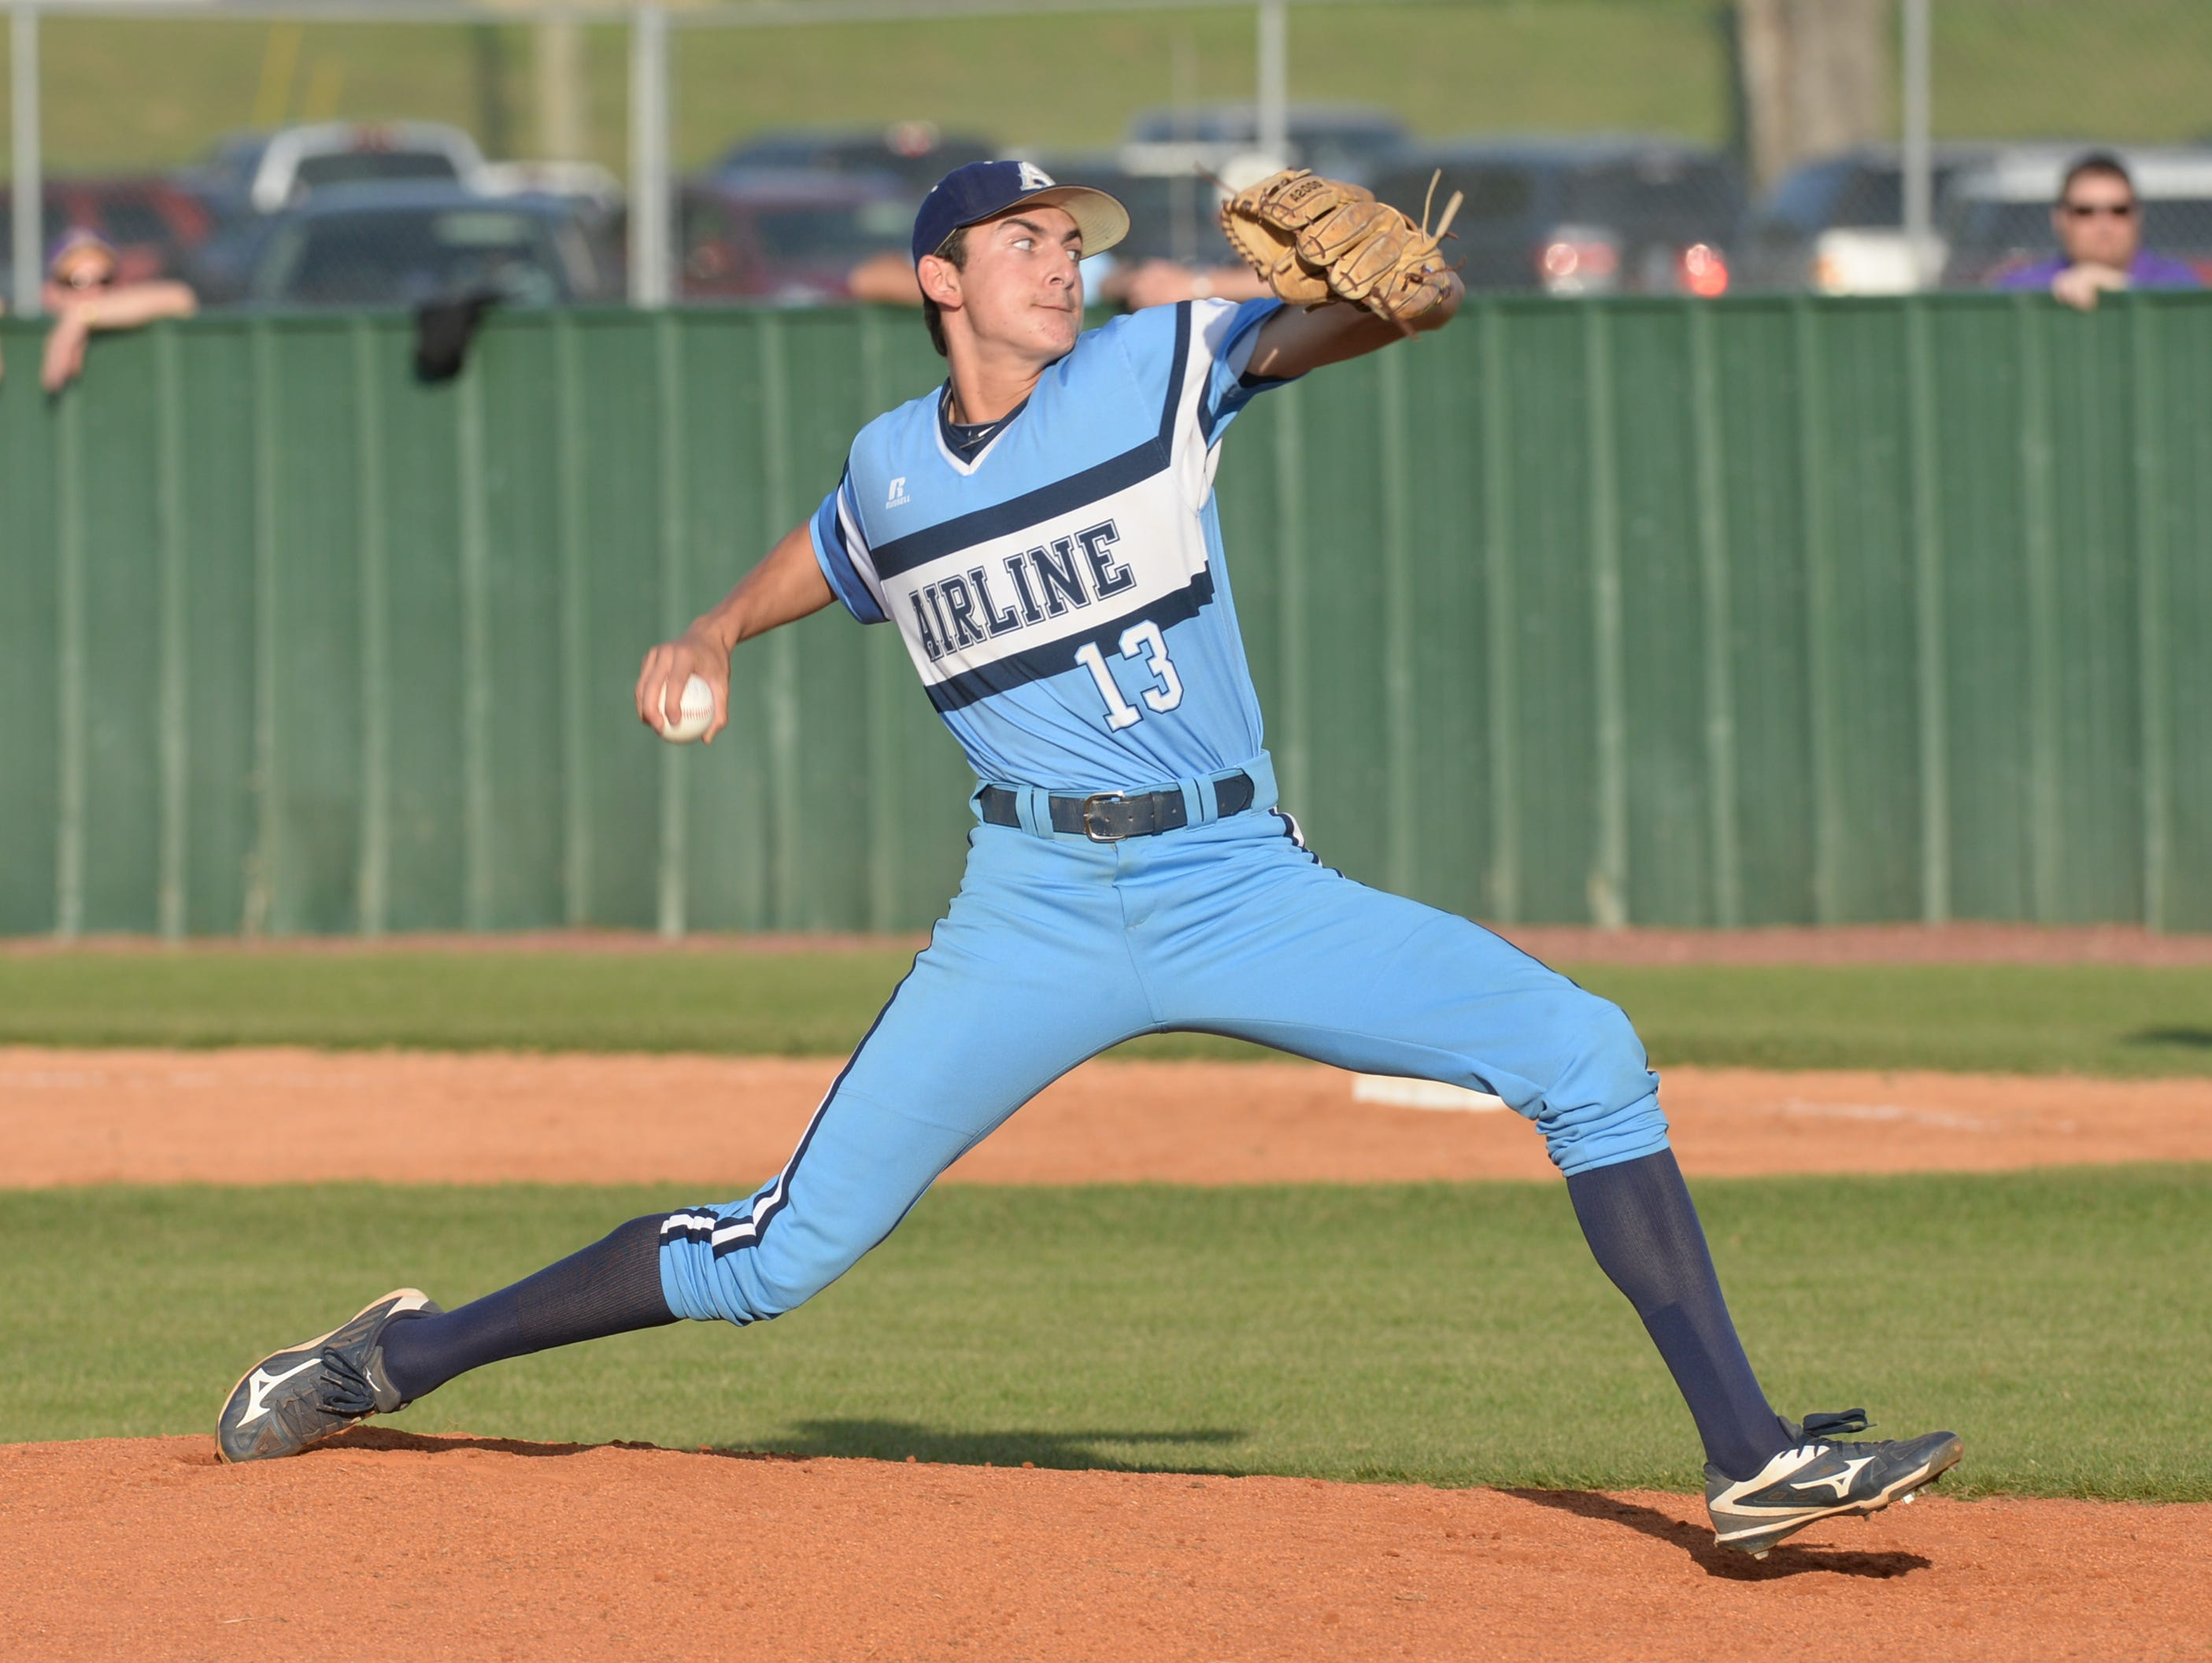 Airline pitcher Cameron Parikh starts off the night against Byrd.